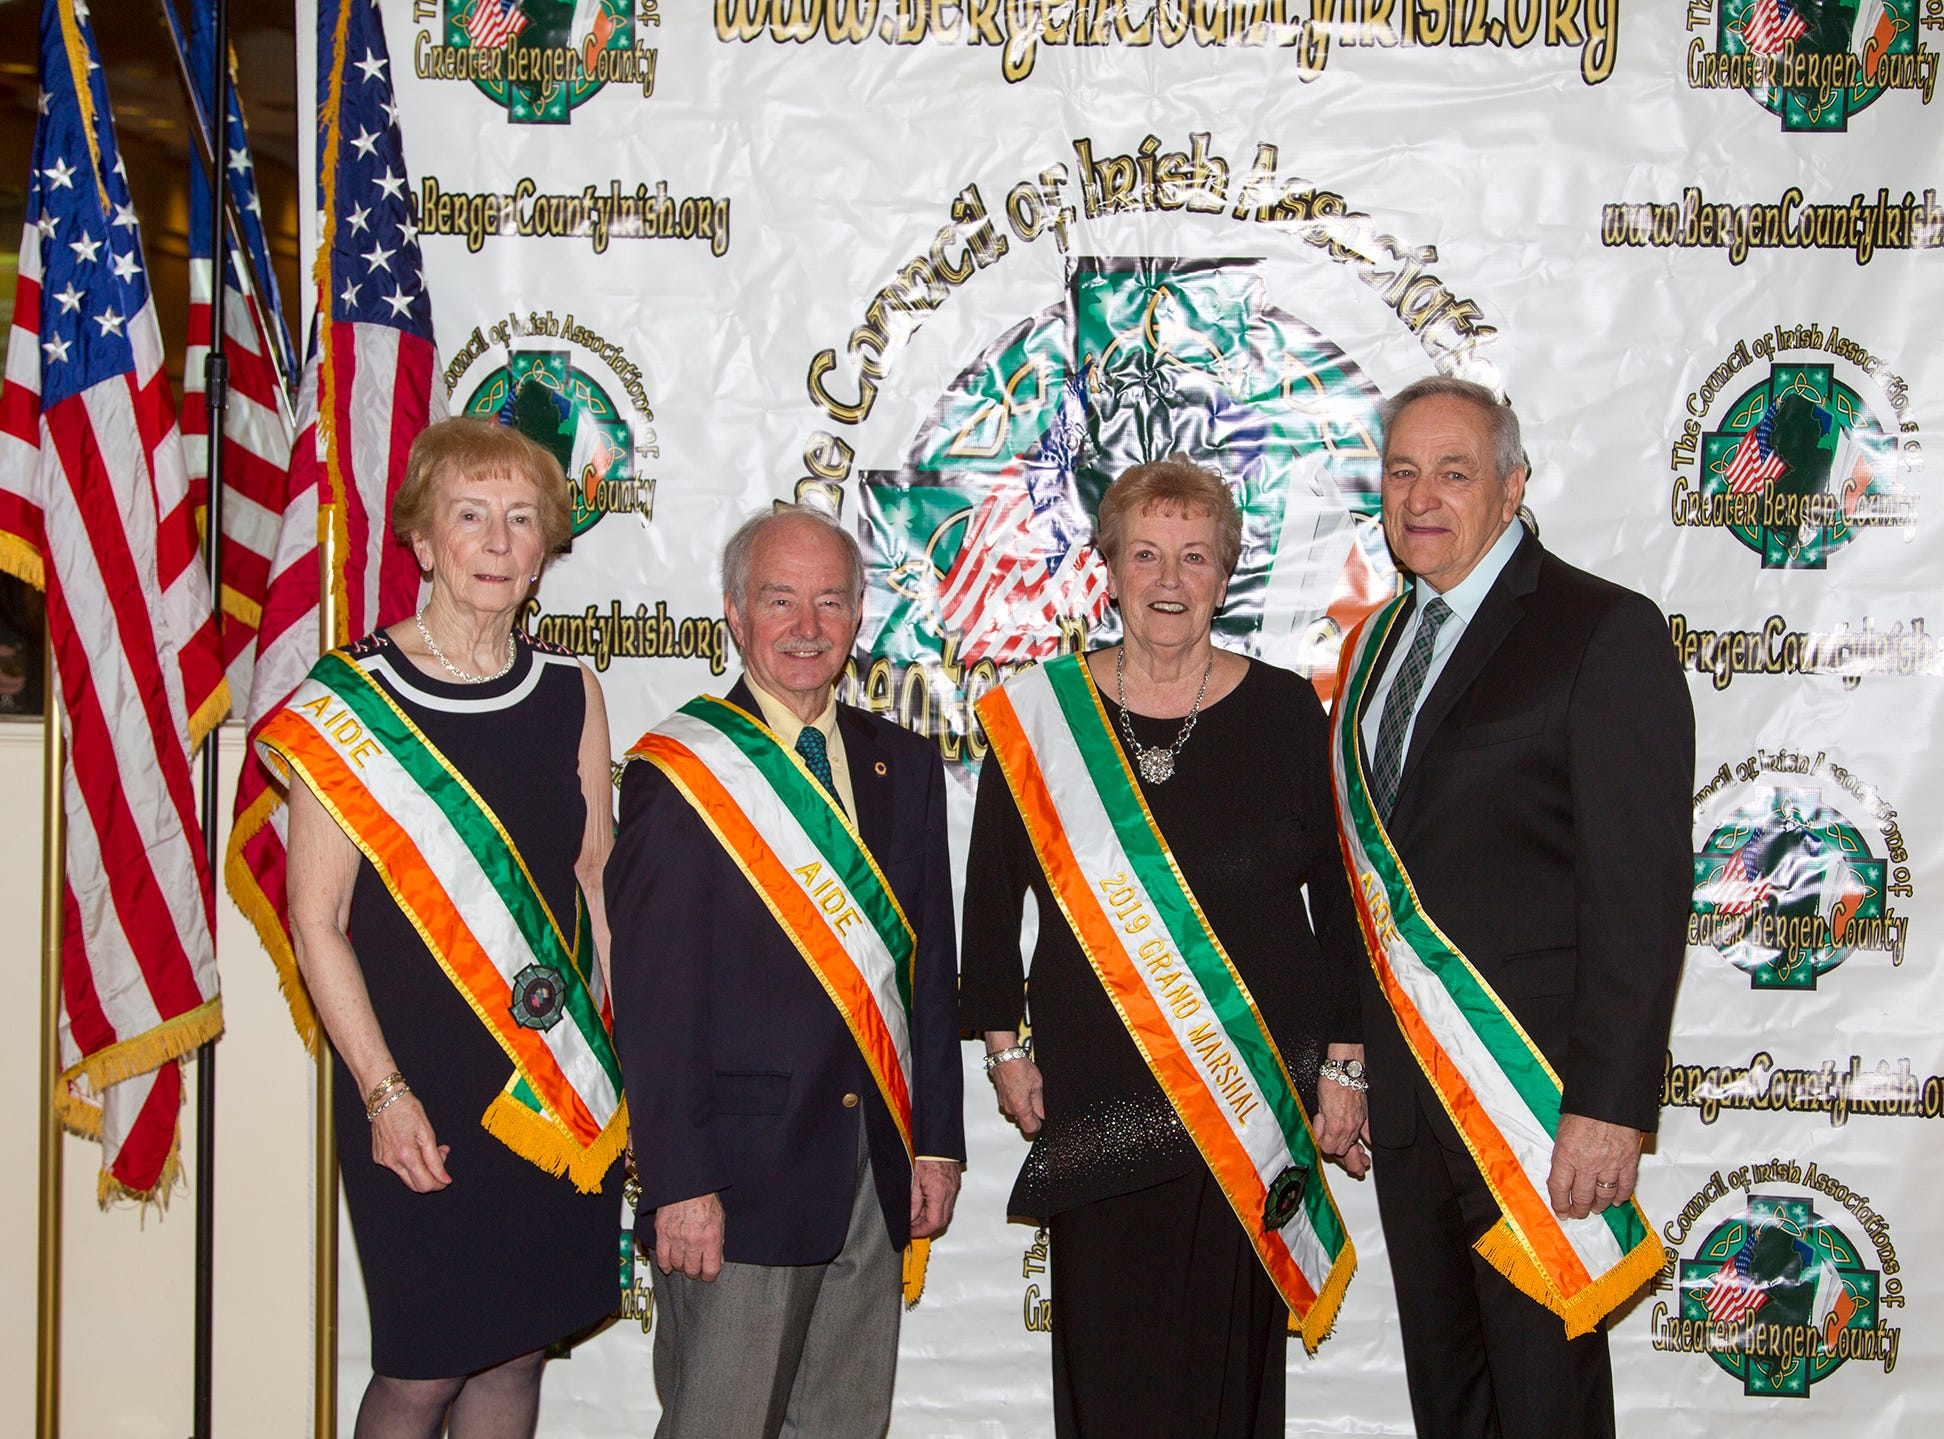 Anne Donnelly, Tom Neats, Patsy McLoughlin, Joe Verga. 38th Annual St. Patrick's Day parade Installation Dance at The Graycliff in Moonachie. 2/23/2019